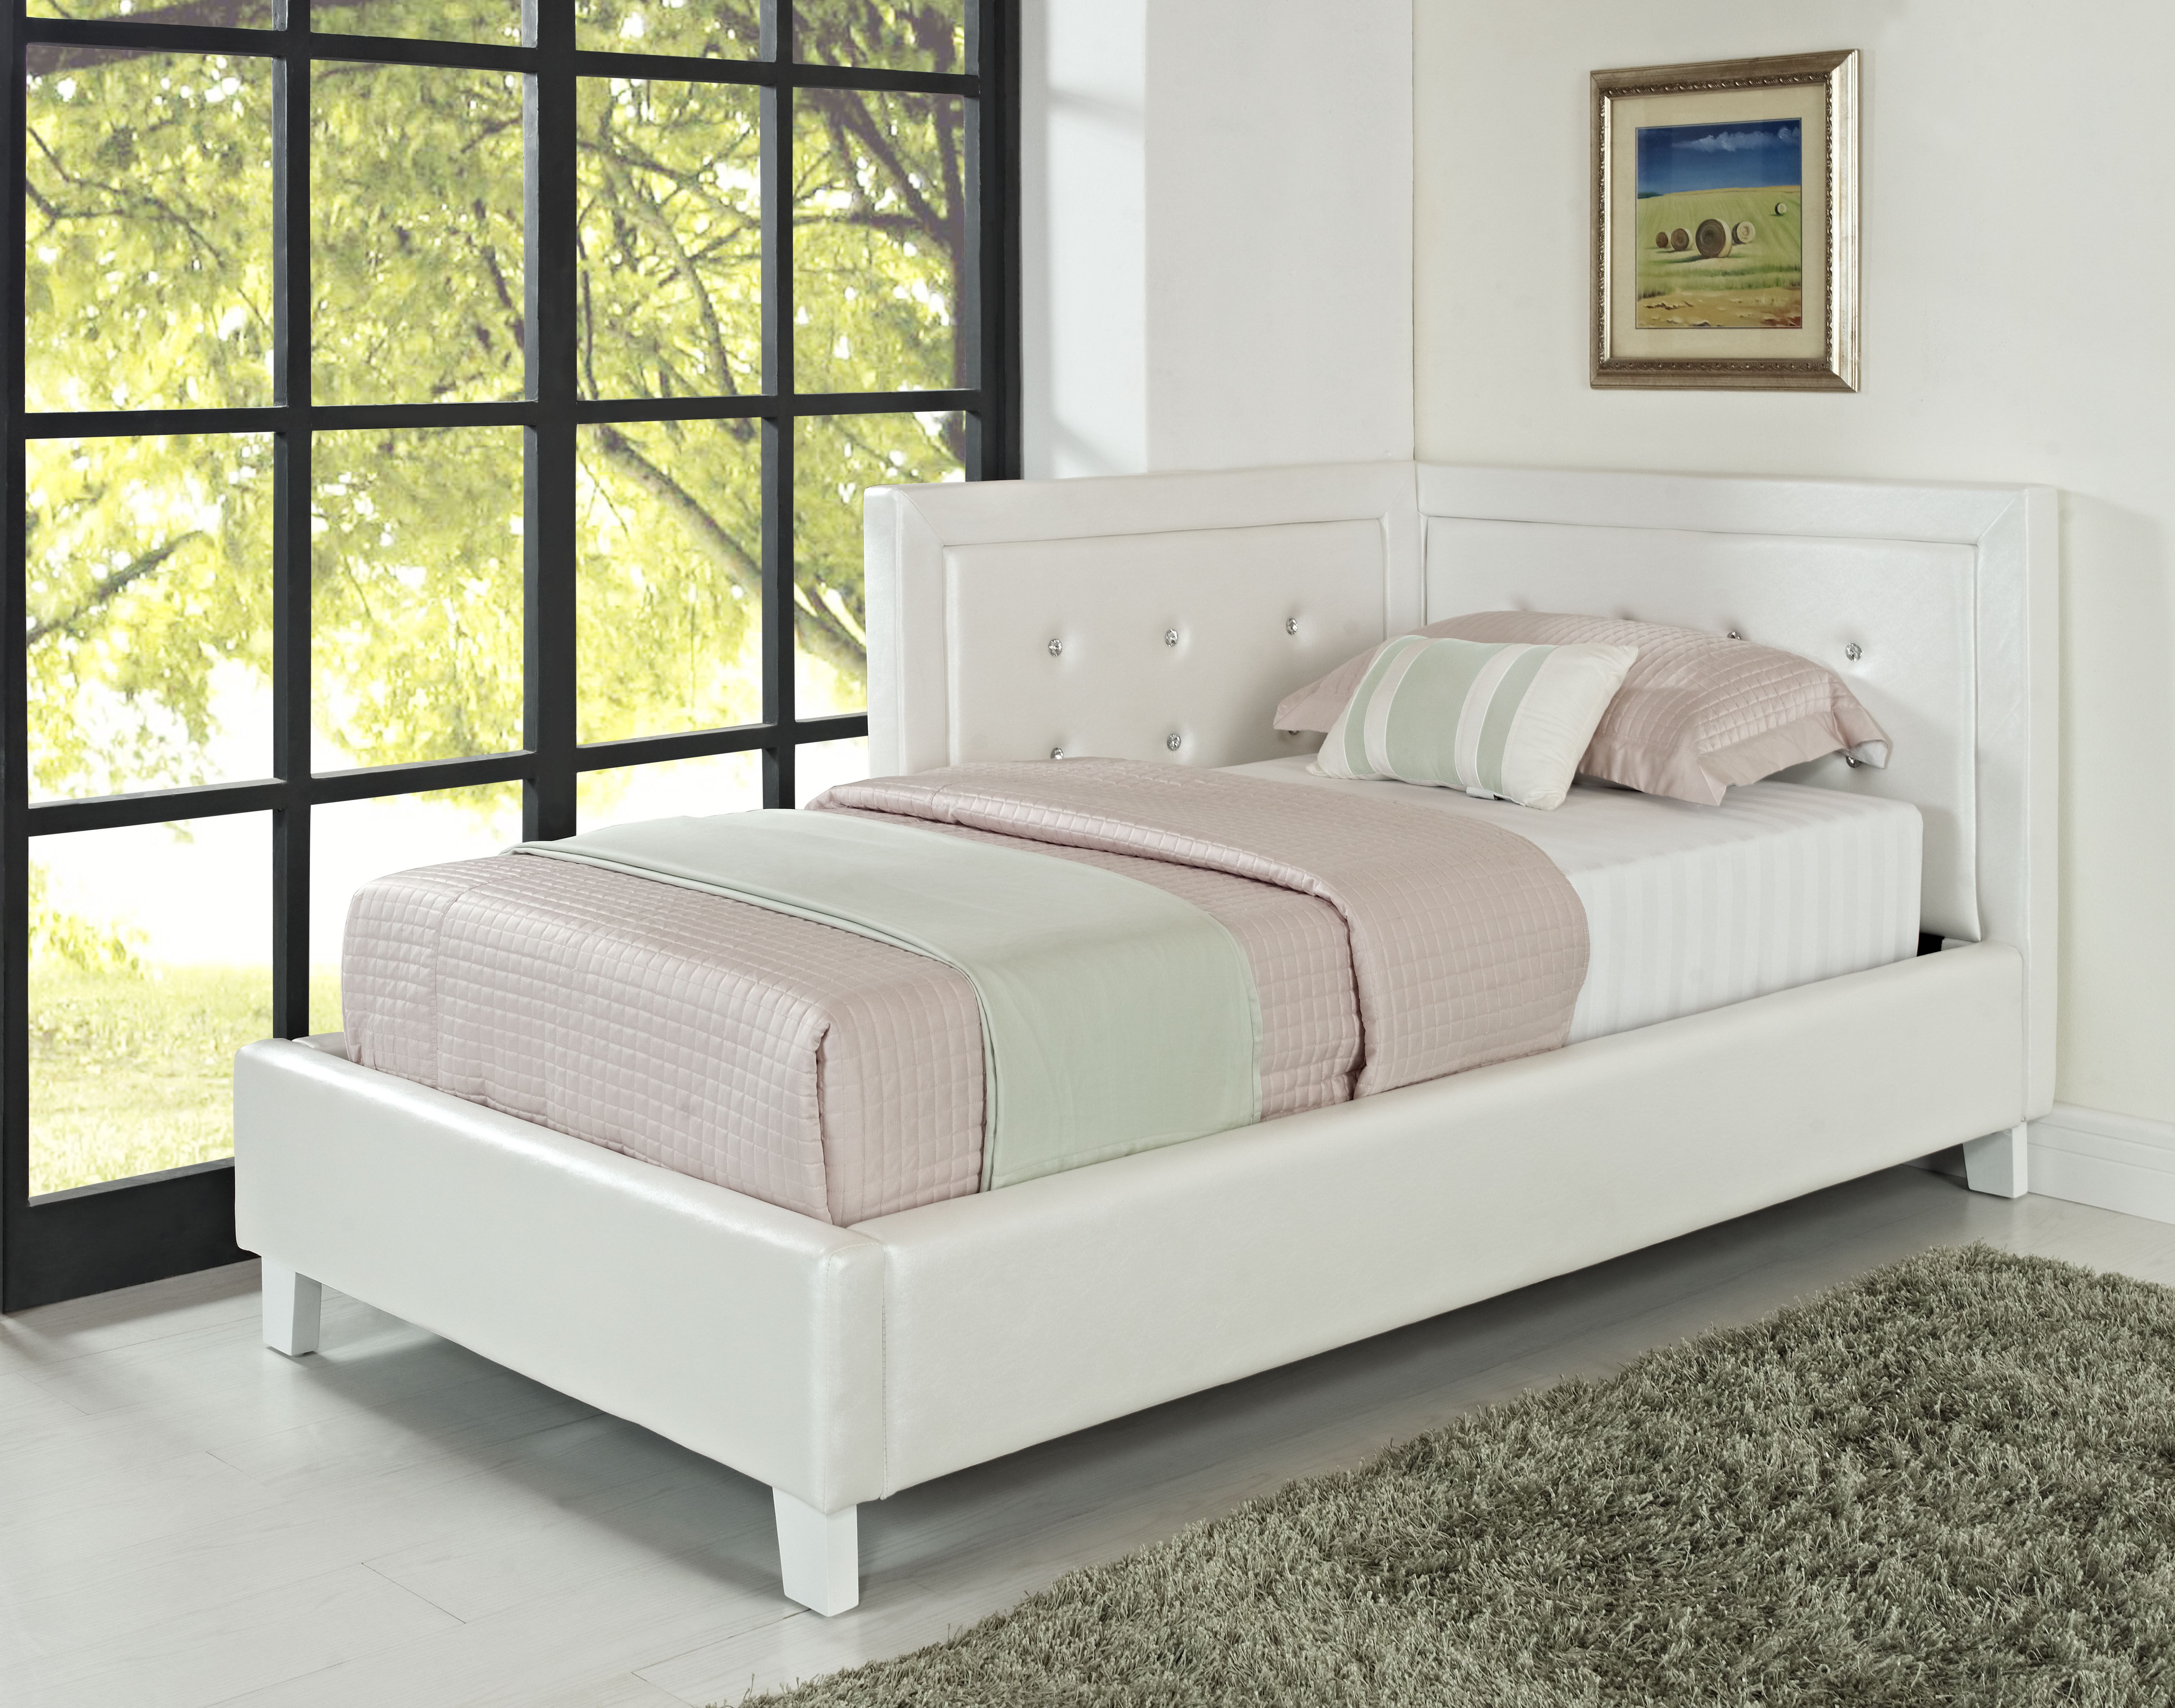 Image Result For Celine Bedroom Furniture